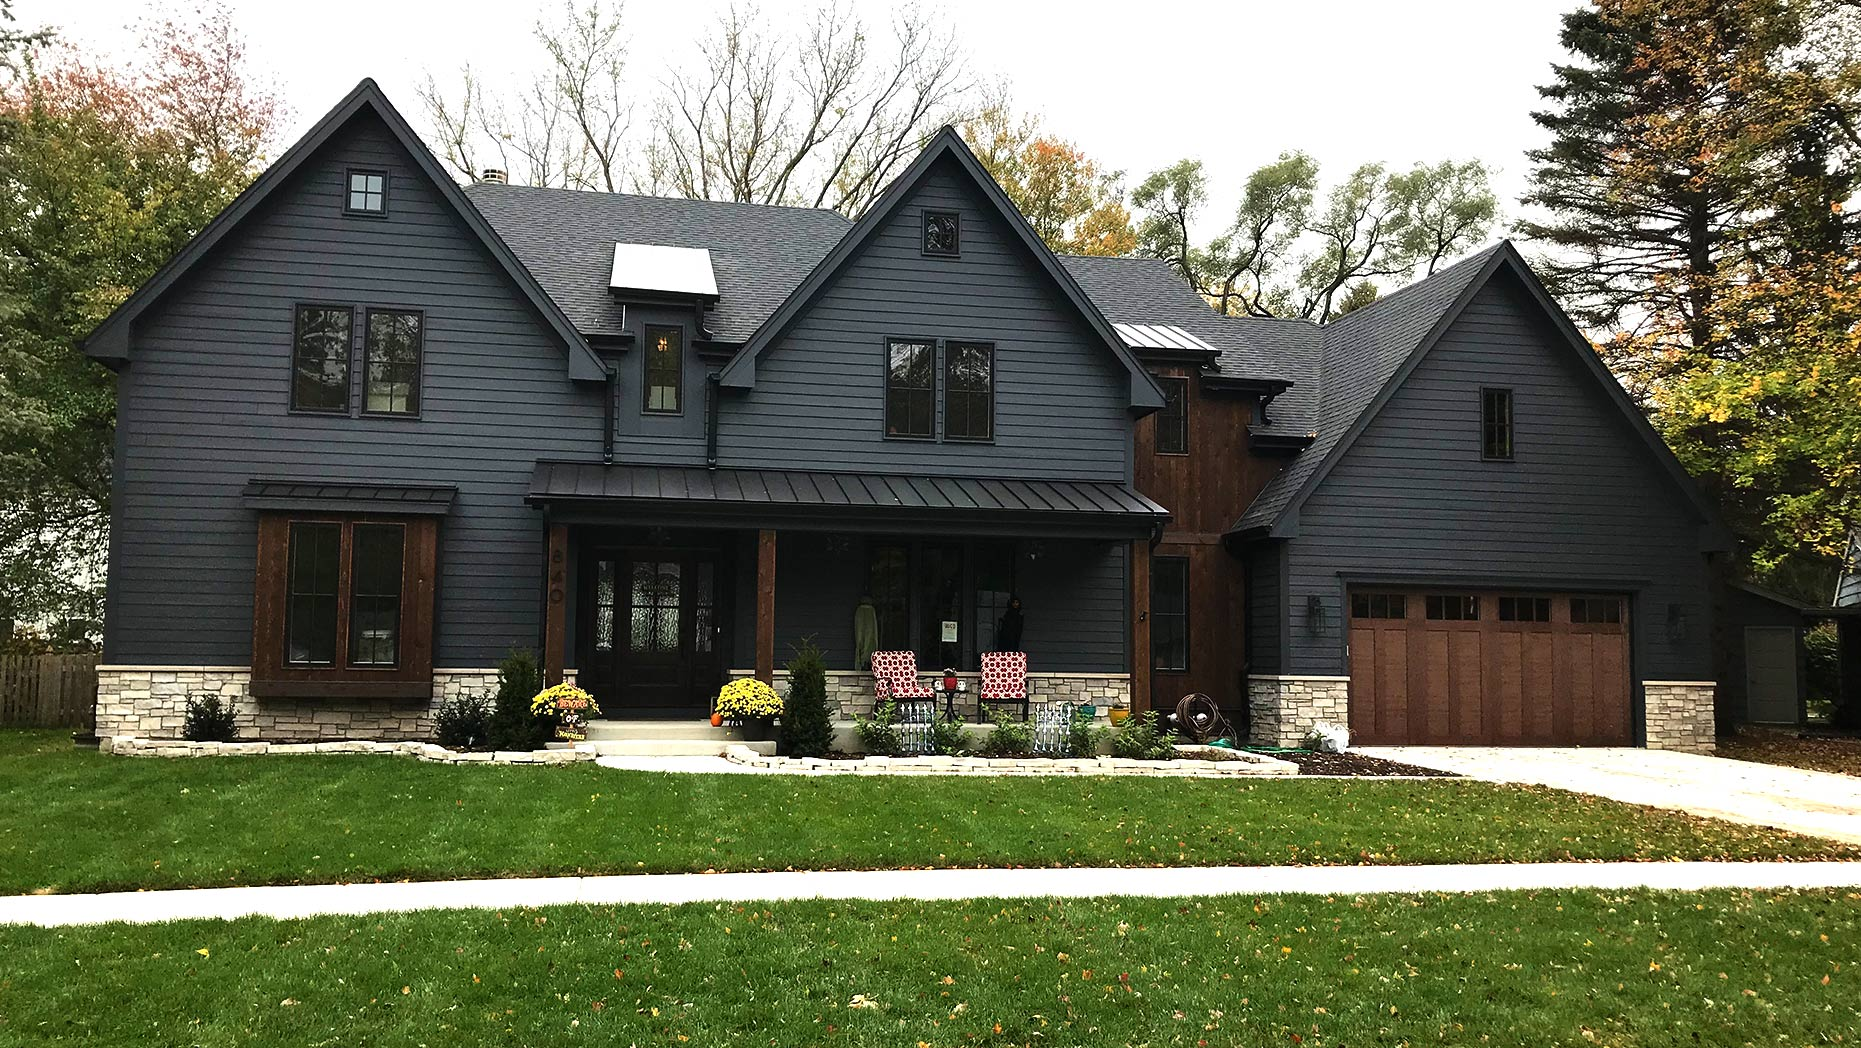 Roofing & Siding by A&E Roofing & Siding